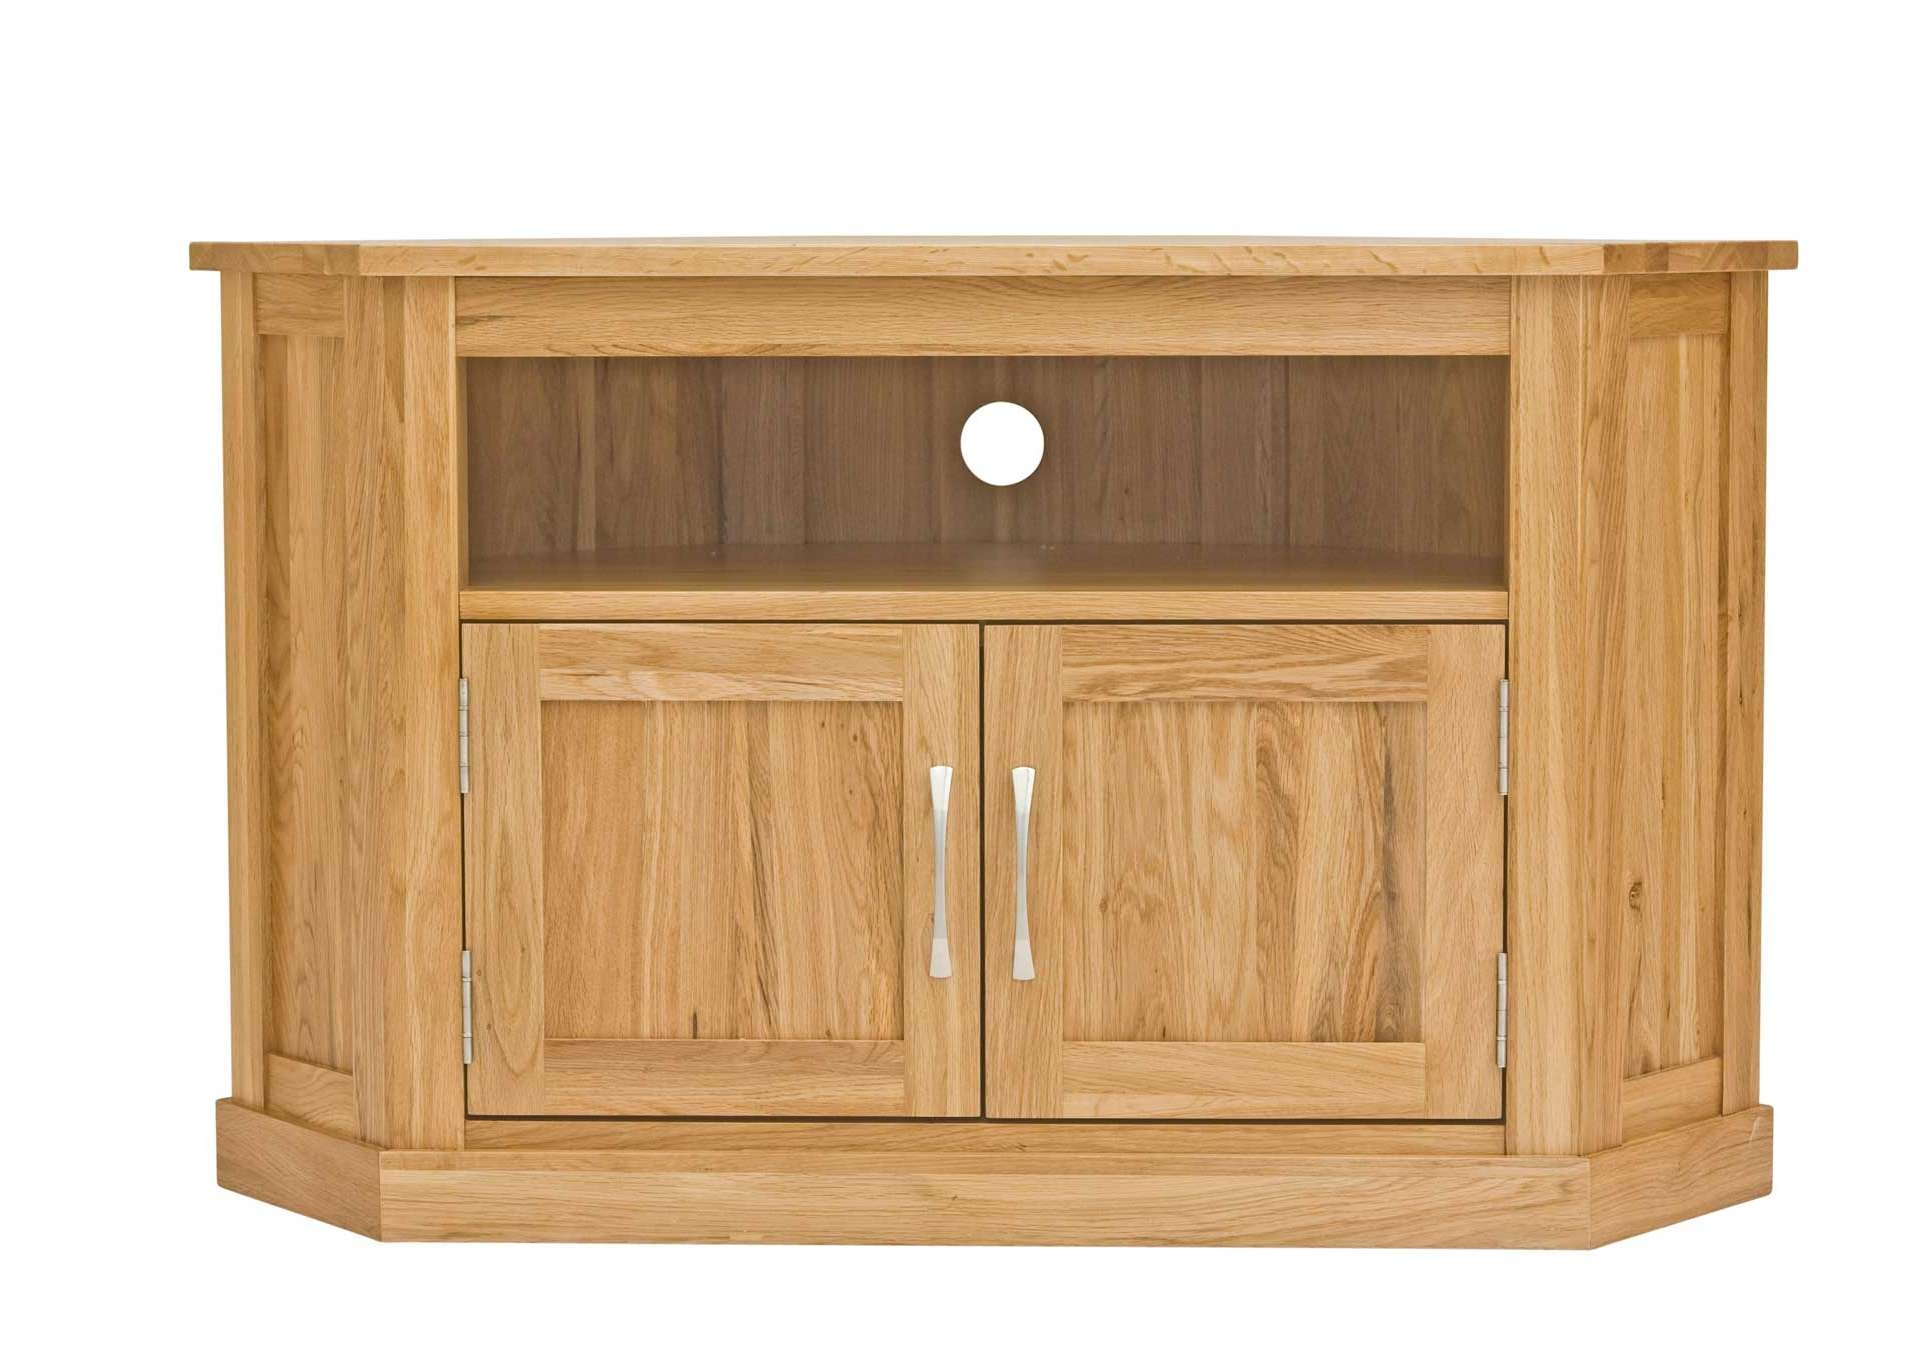 Classic Oak Corner Television Cabinet | Hampshire Furniture Within Solid Wood Corner Tv Cabinets (View 4 of 20)